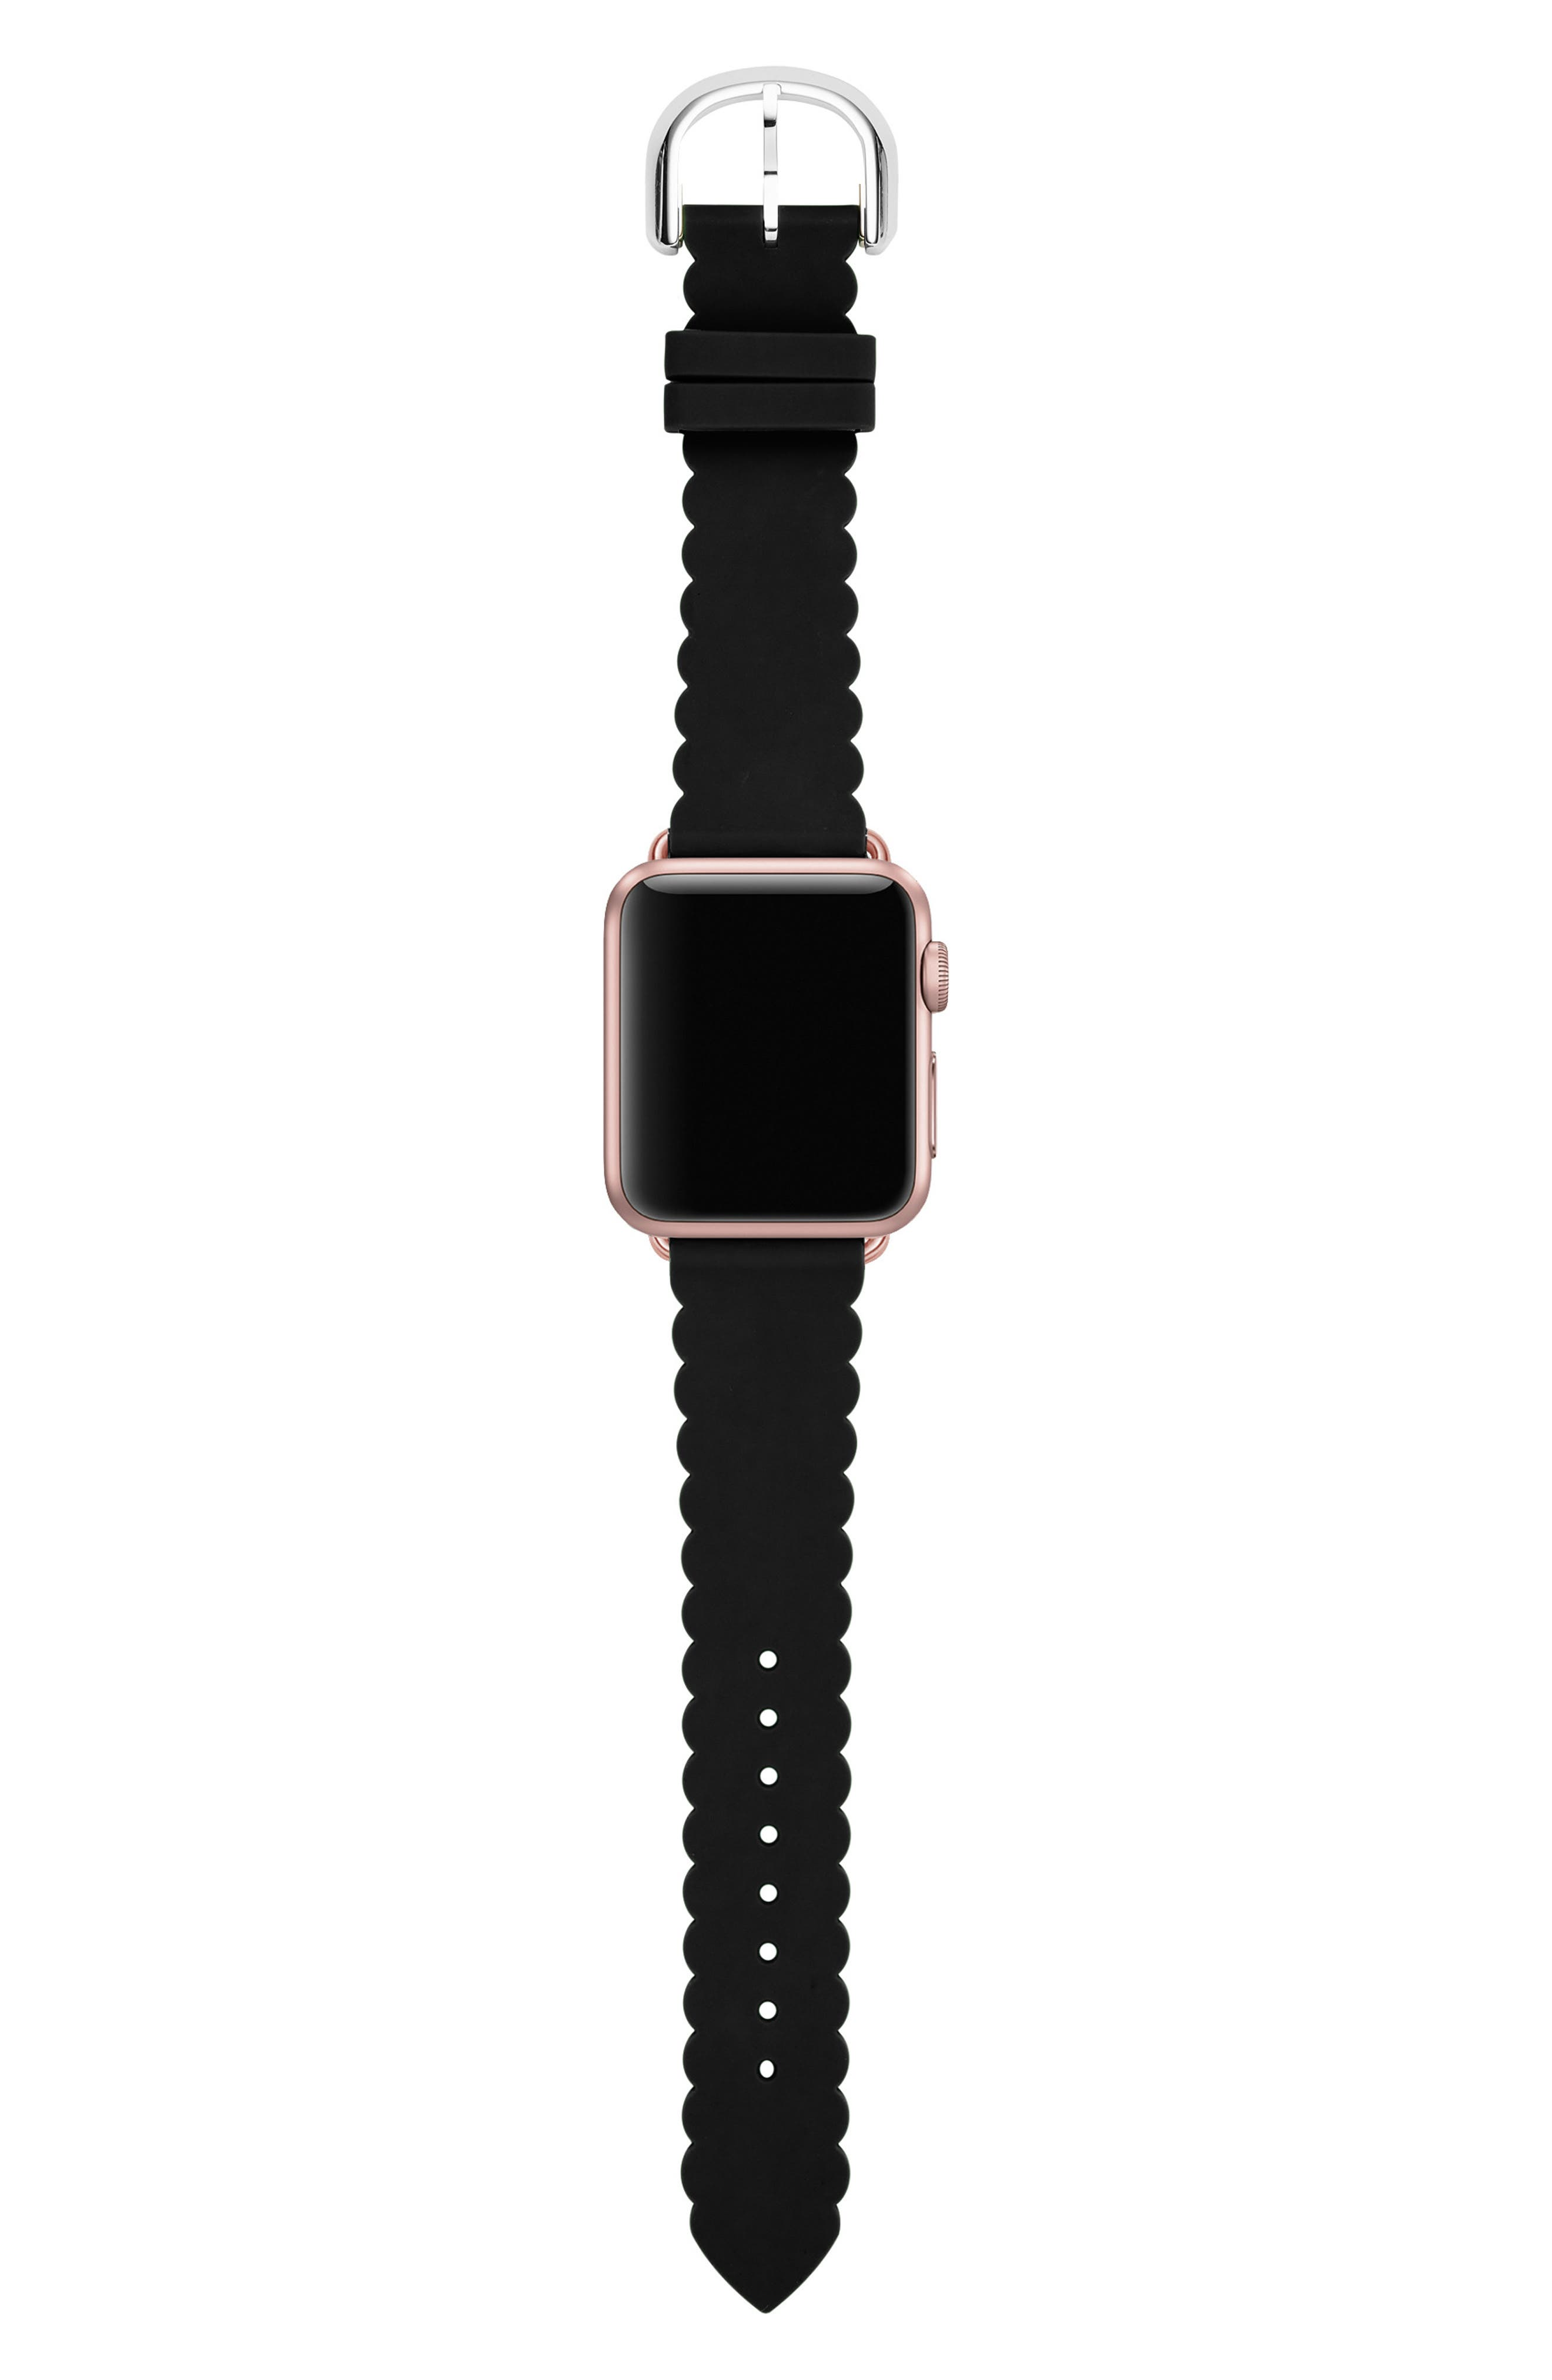 Apple<sup>®</sup> Watch strap, 42mm, Main, color, BLACK